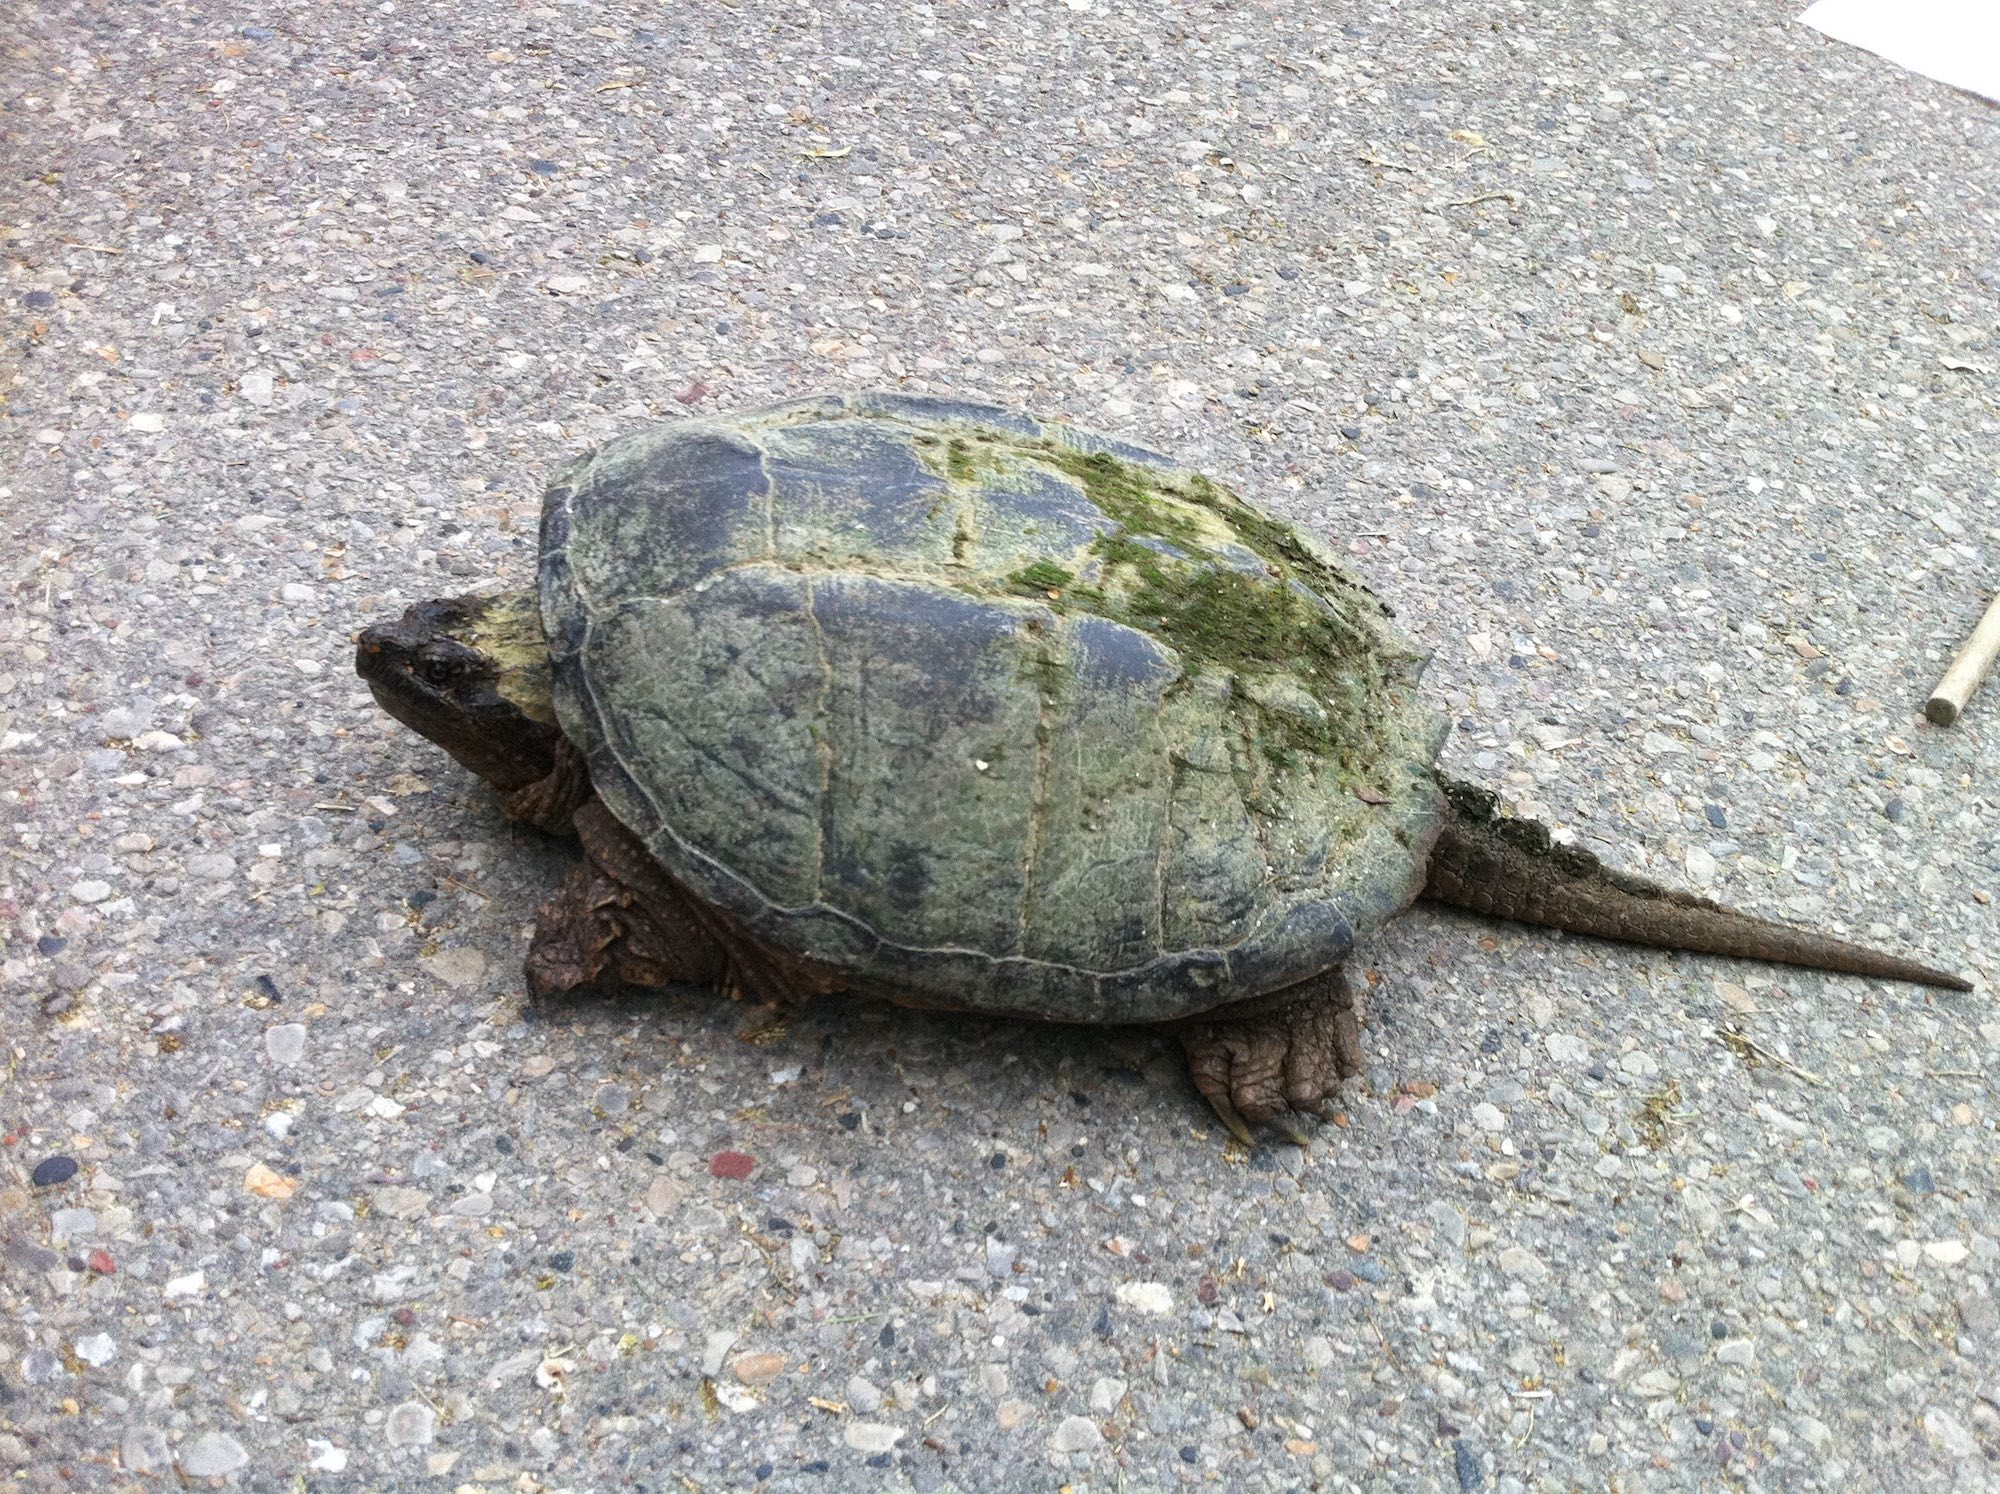 Snapping Turtle on Arbor Drive across from Ho-Nee-Um Pond on Lake Wingra in Madison, Wisconsin on June 5, 2015.